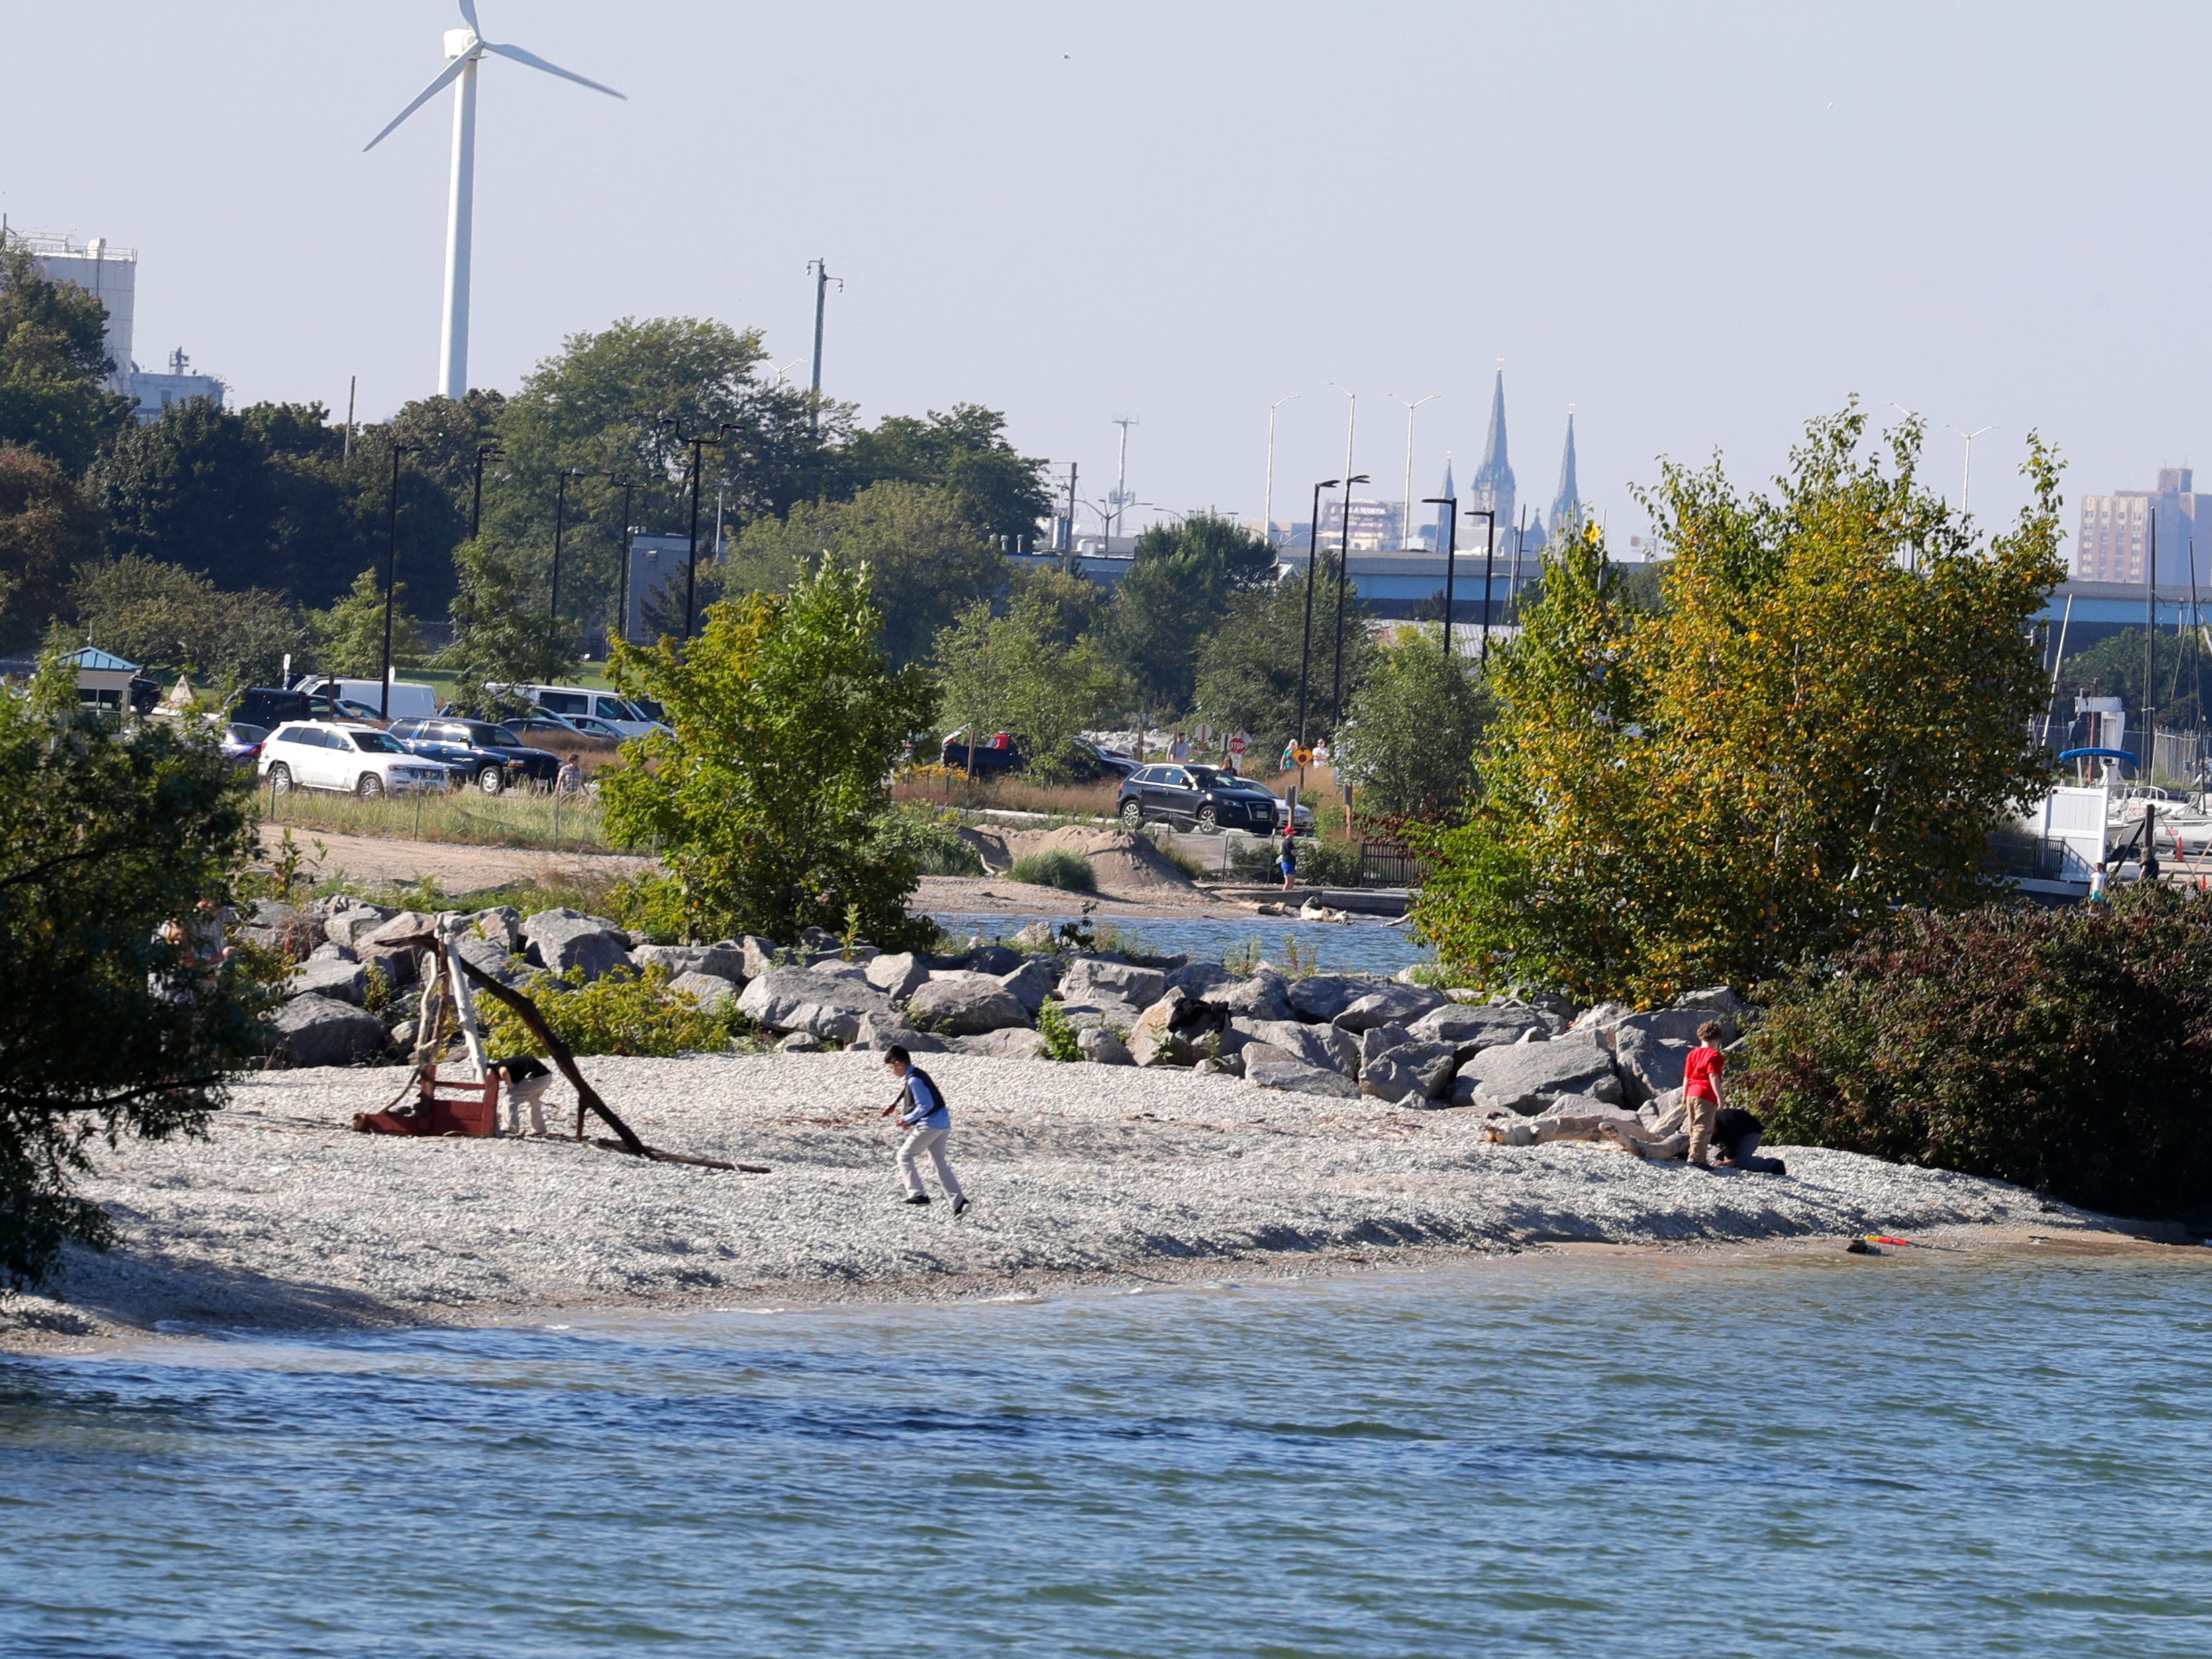 Children play on a stone shoreline south of a jetty (right) at South Shore Park. This stretch of shoreline is one of the proposed locations for a new sand beach for the park.